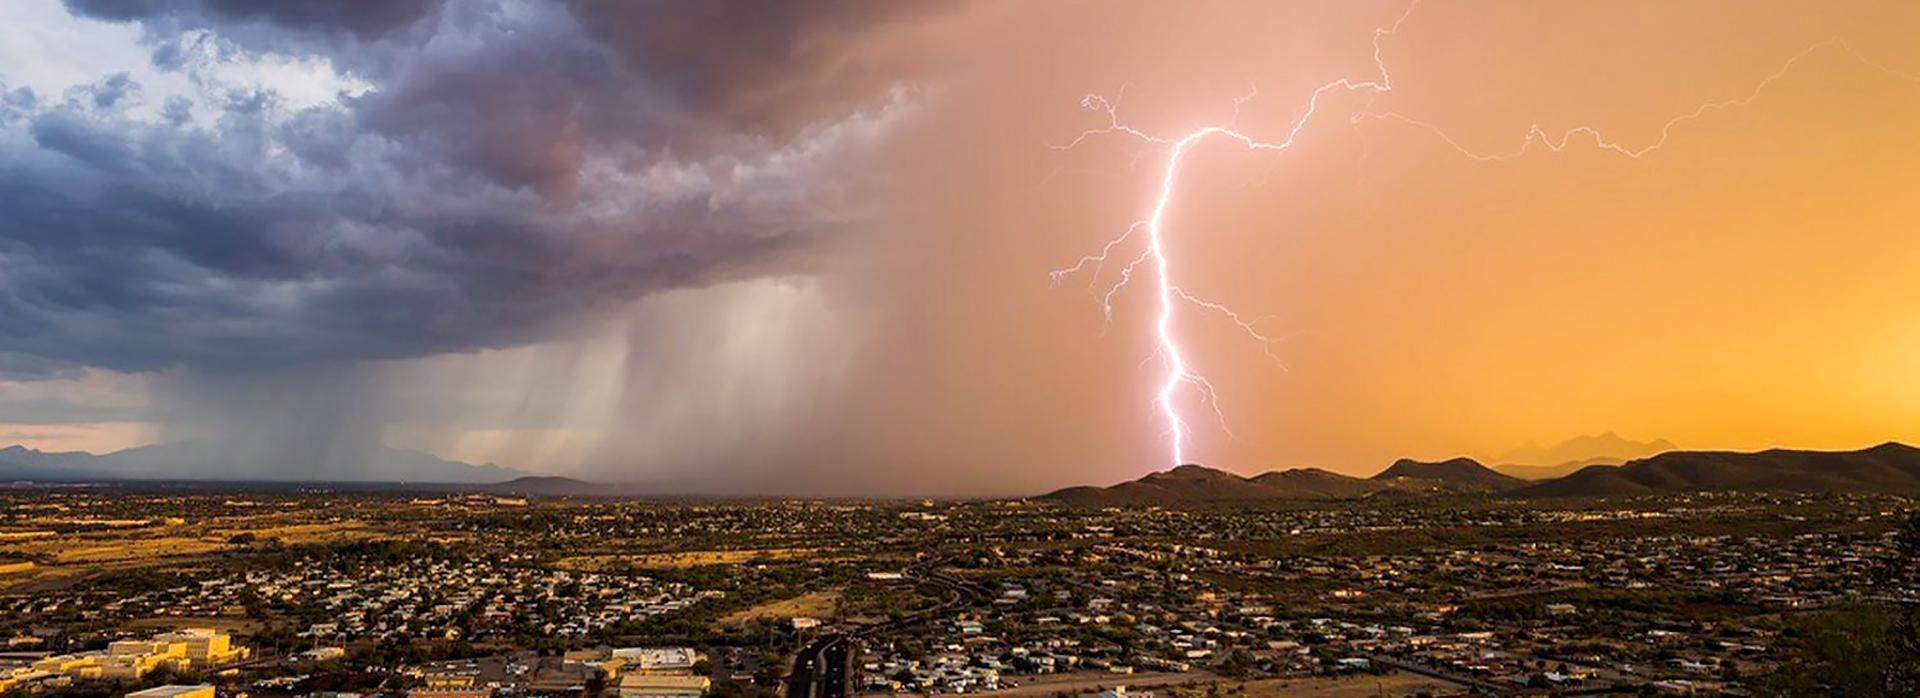 Arizona Monsoon 2017